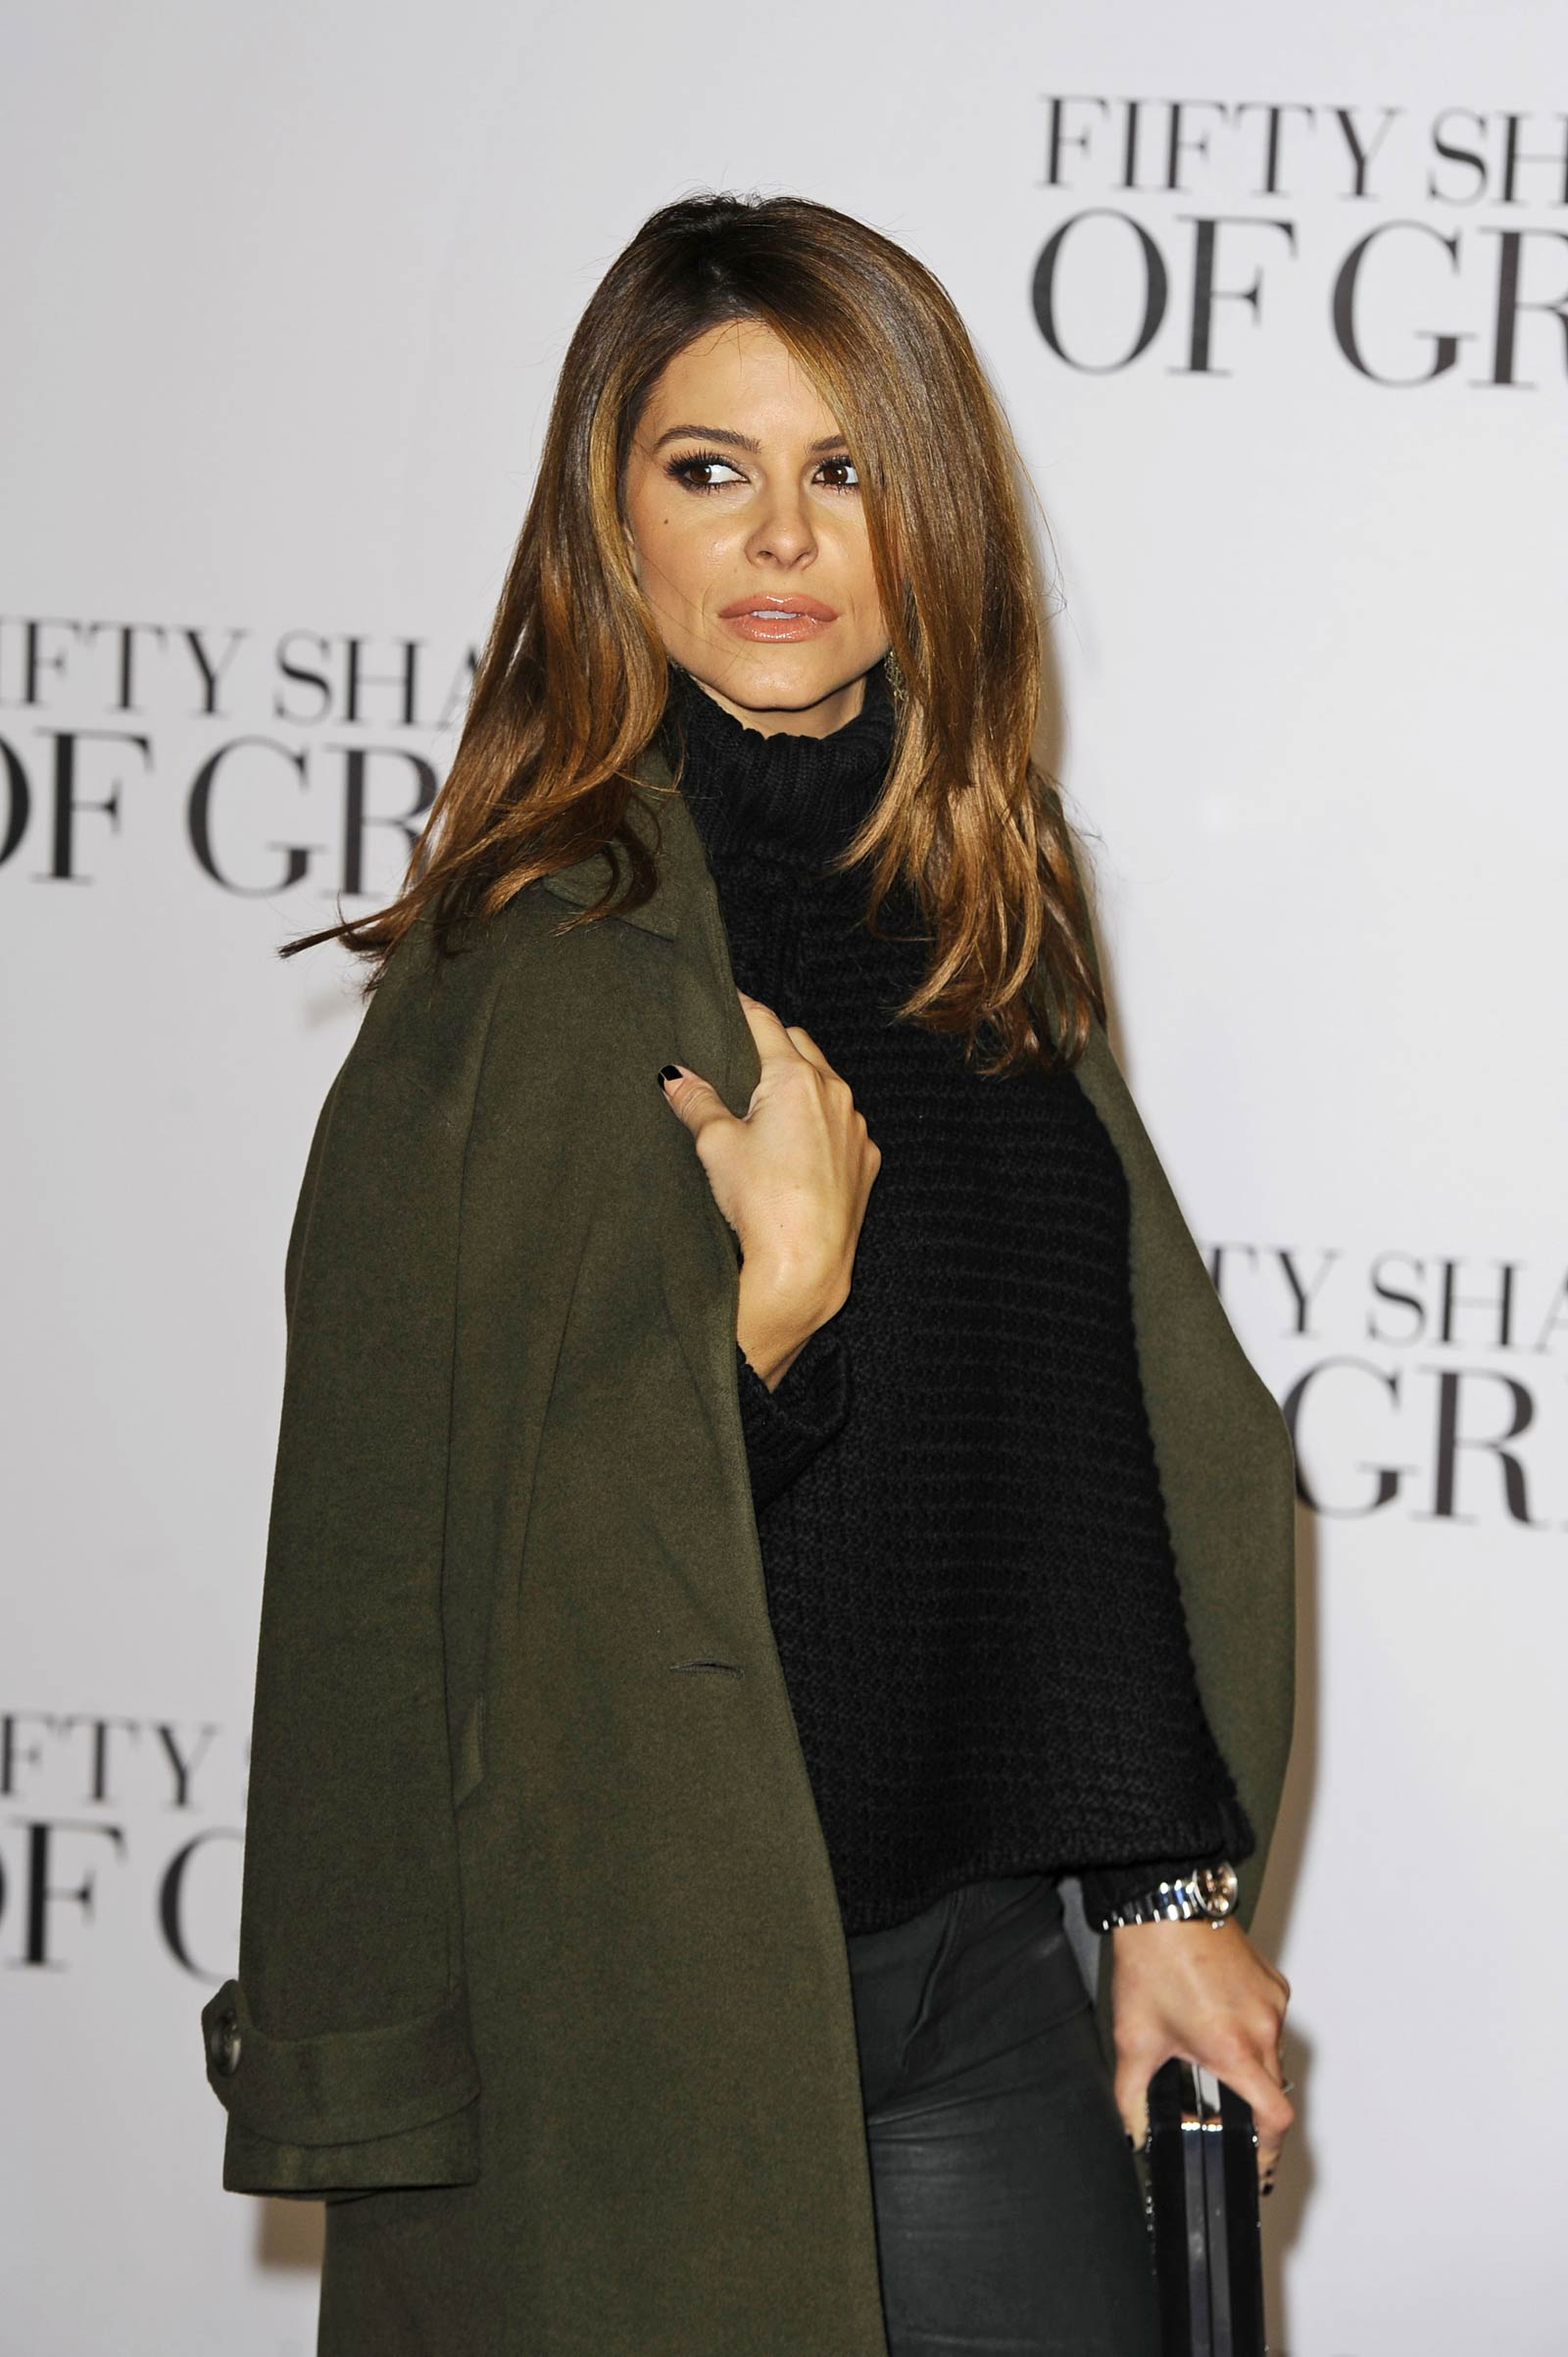 Maria Menounos attends Fifty Shades Of Grey Premiere